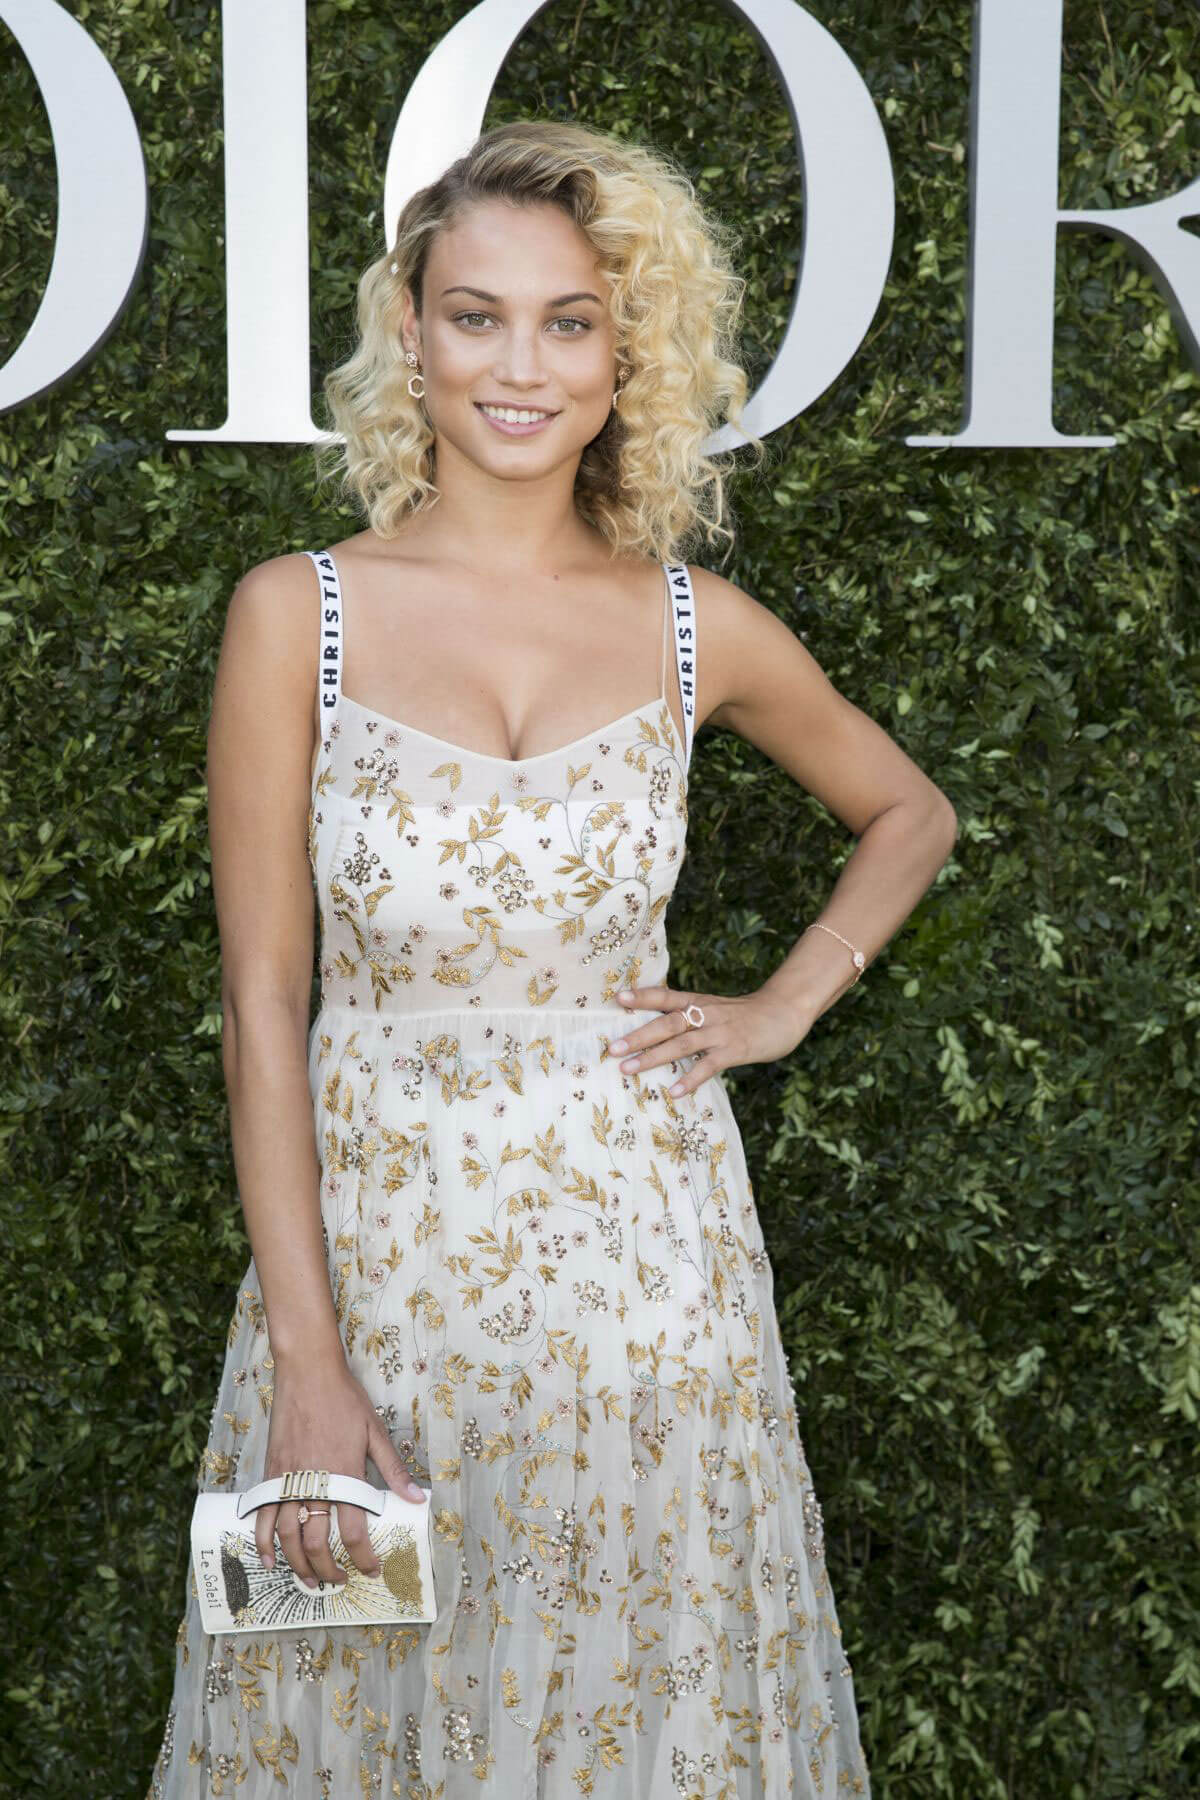 Rose Bertram Stills at Christian Dior Fashion Show Photocall in Paris